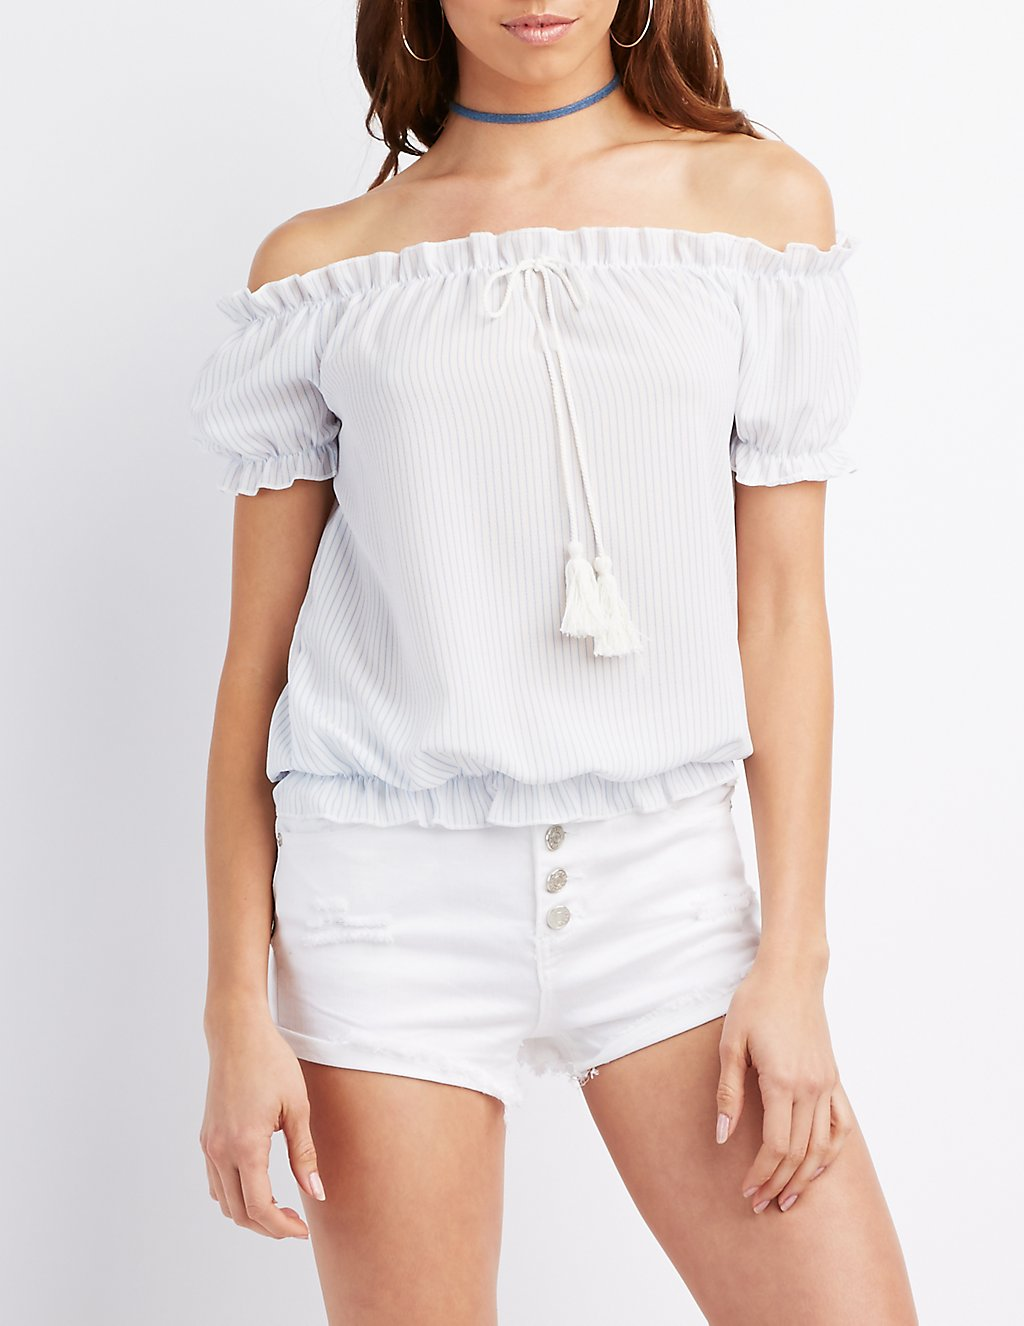 Up to 70% off on Charlotte Russe Sale